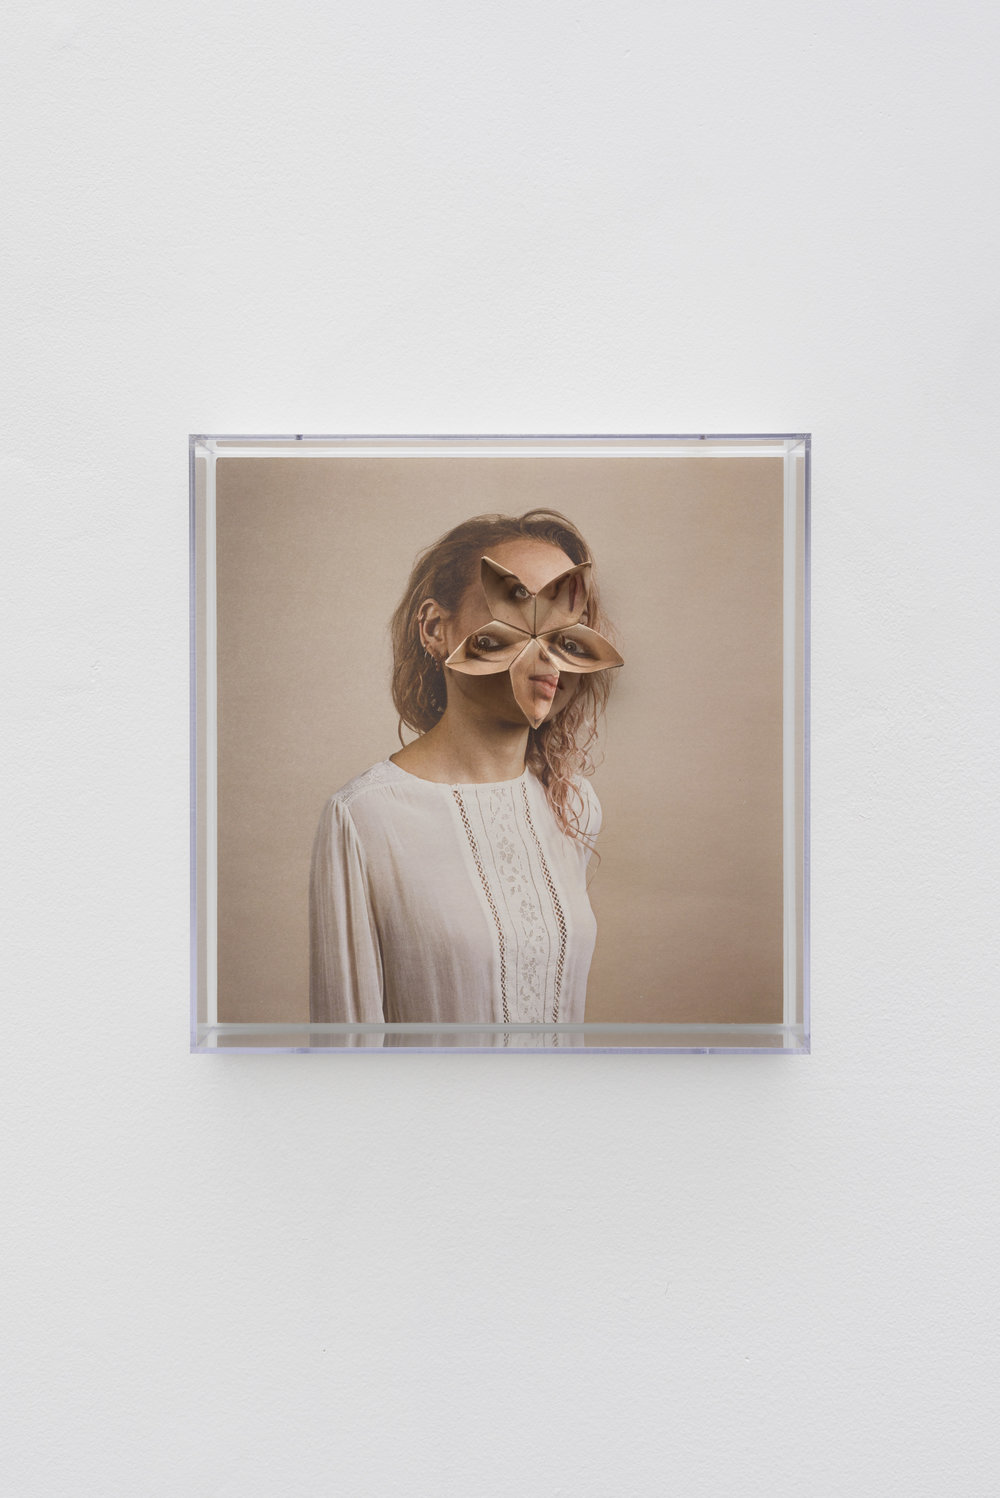 Alma Haser,  Patient No. 40 HD (Hannah) , 2017  Digital pigment print with folded digital pigment print sculpture, plexiglass box, 30 x 30 x 10 cm (approx. 12 x 12 x 4 in), edition of 5   Inquire